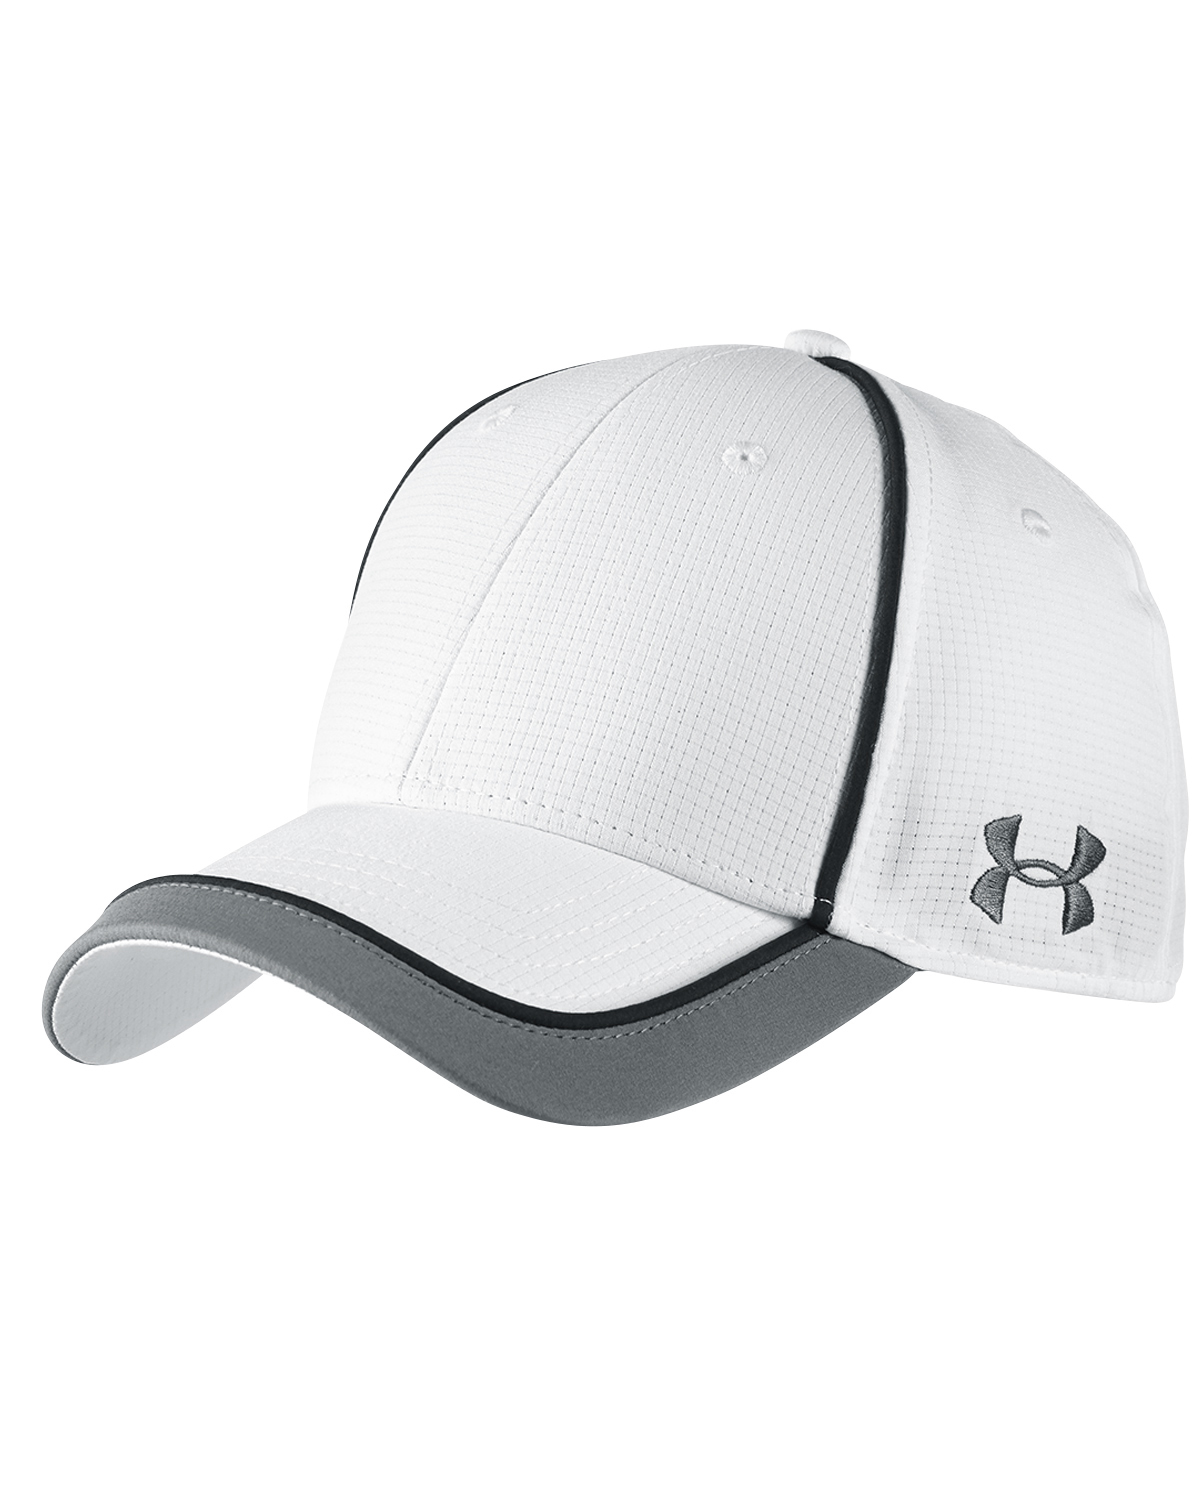 5bb5e864881 Under Armour Sideline Fitted Cap. 1282231